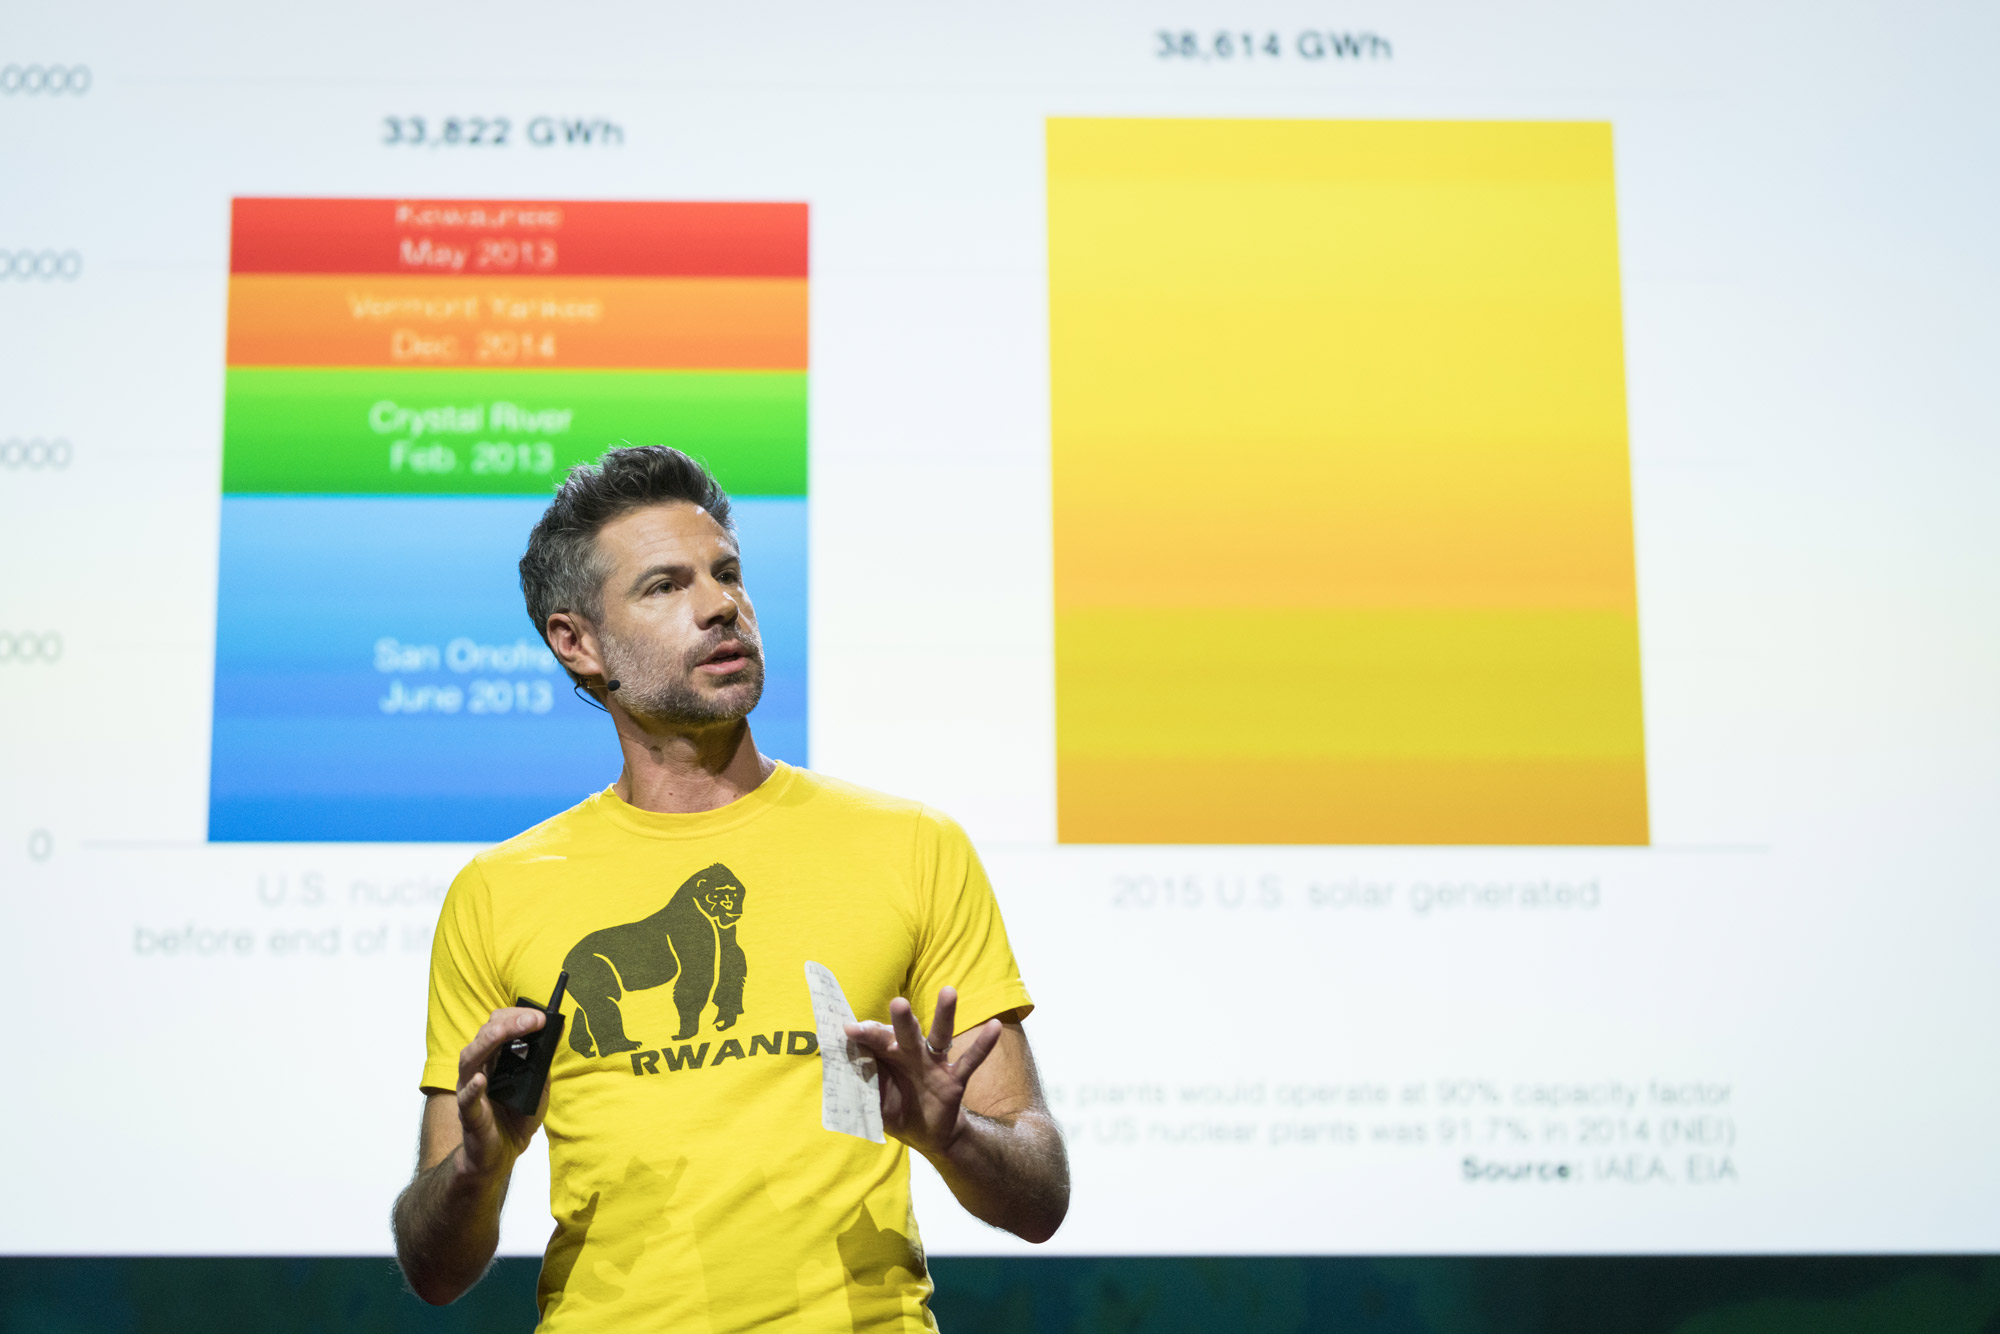 Michael Shellenberger suggests that the future of clean energy should involve nuclear energy. Photo: Bret Hartman